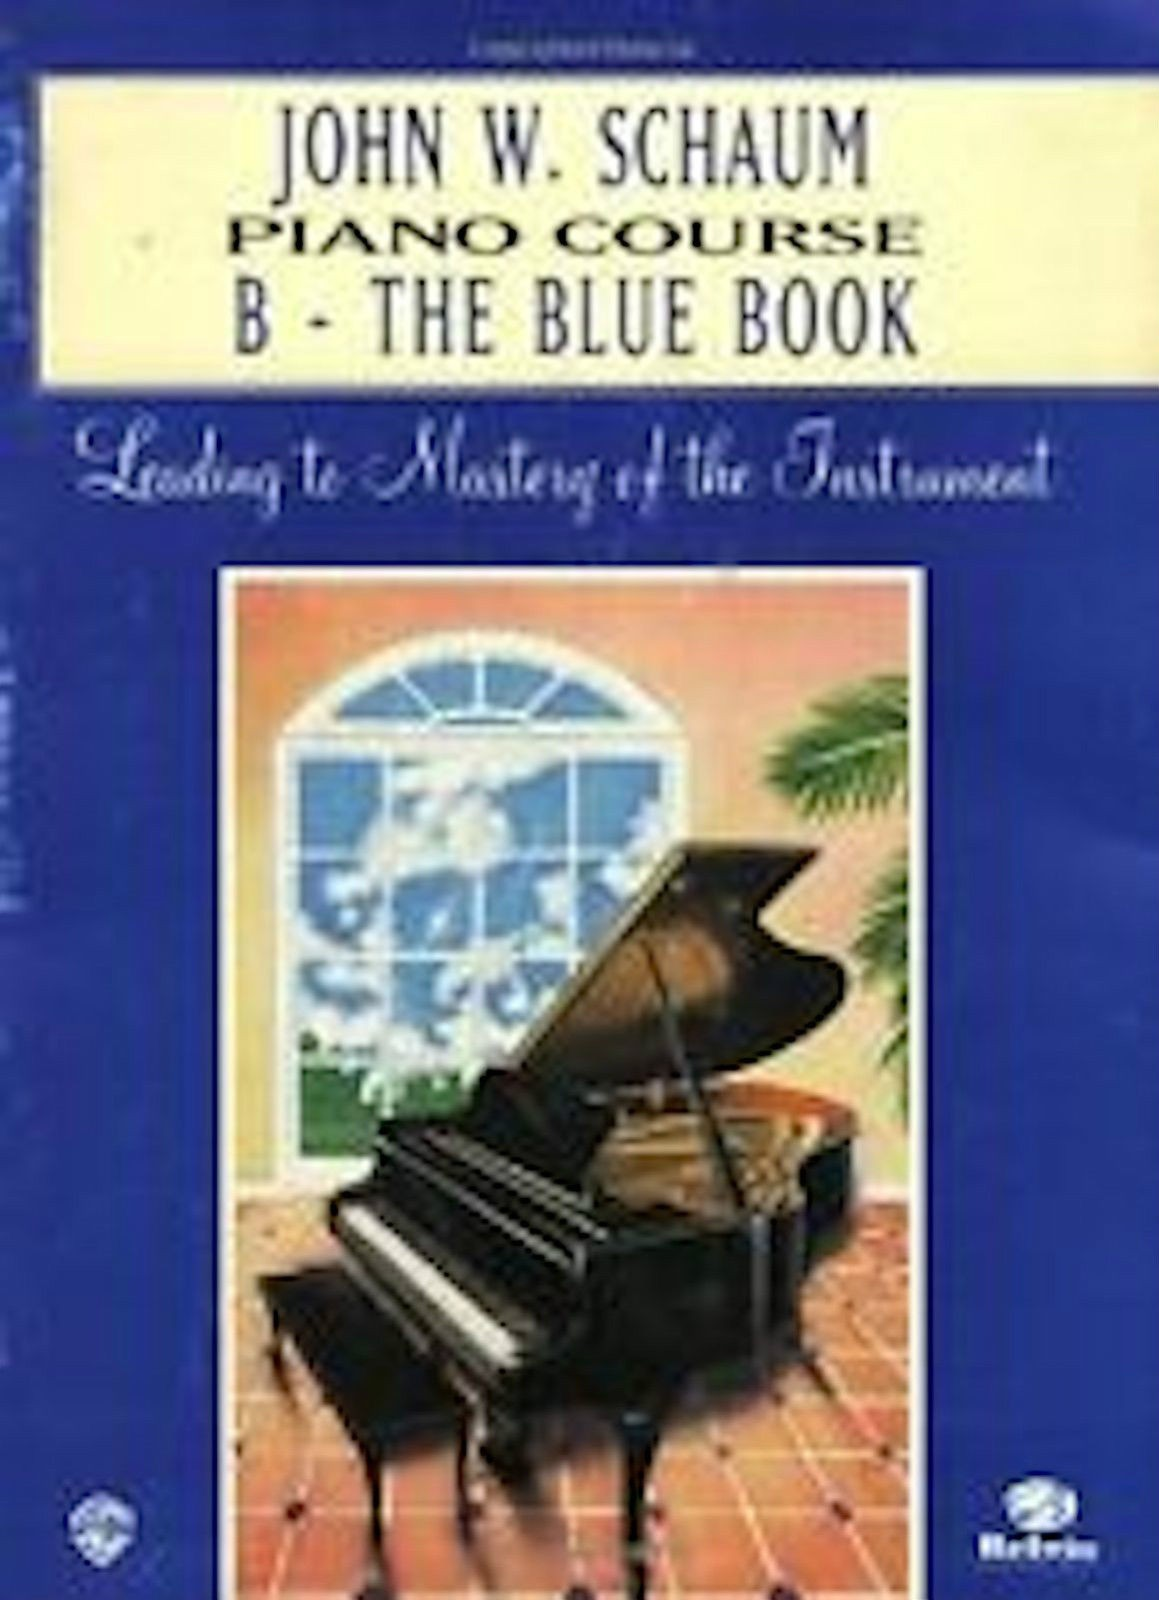 John Schaum Piano Course B The Blue Book Illustrated Young Player Easy Music S91